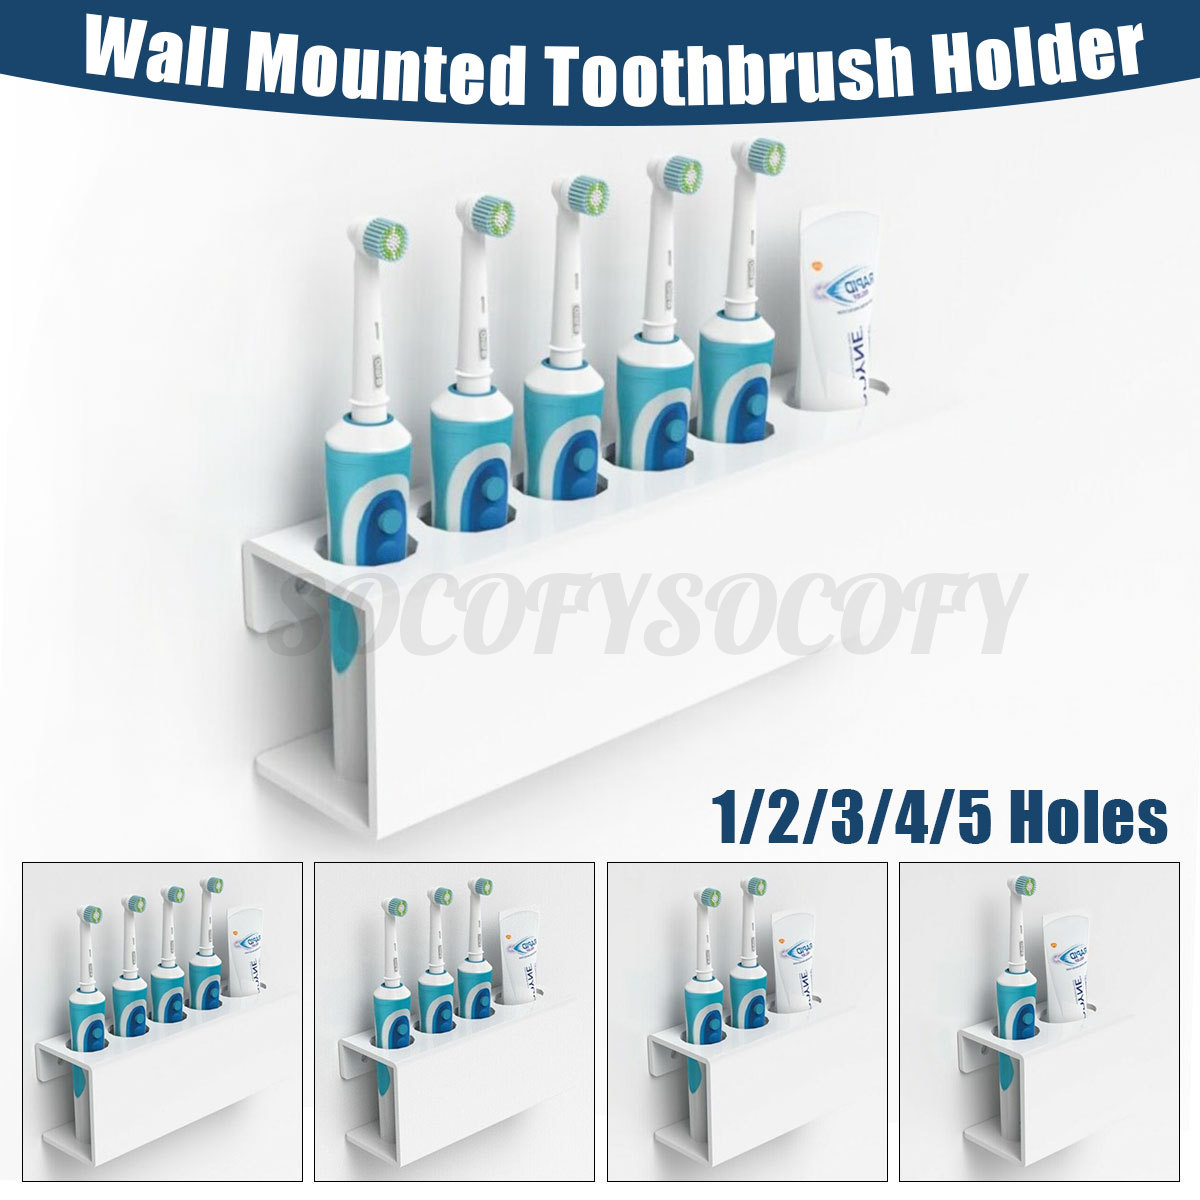 Wall Mounted Electric Toothbrush Toothpaste Holder Bathroom Organiser Storage Ebay